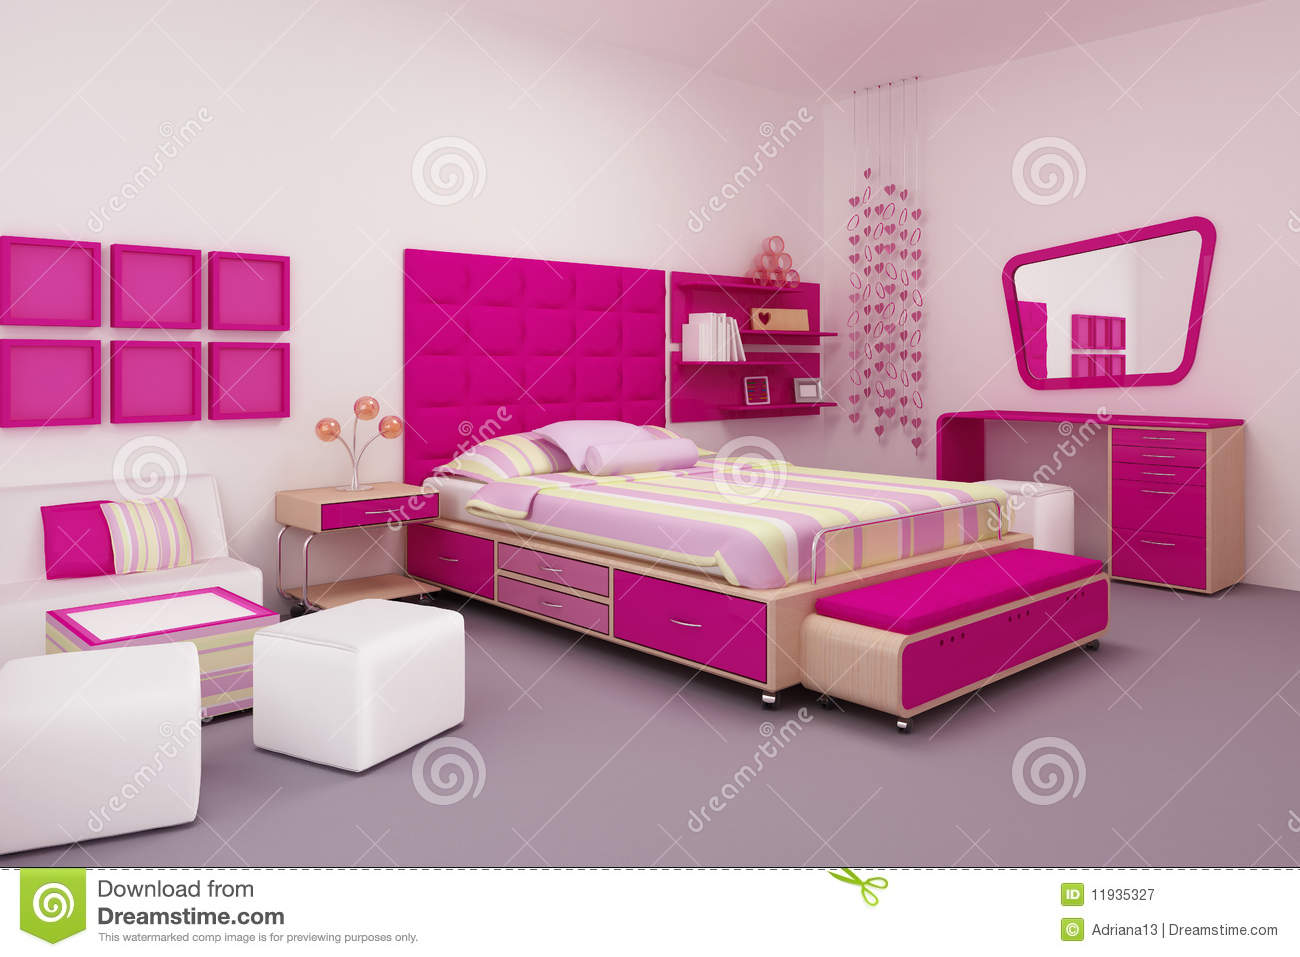 chambre coucher de fille illustration stock. Black Bedroom Furniture Sets. Home Design Ideas